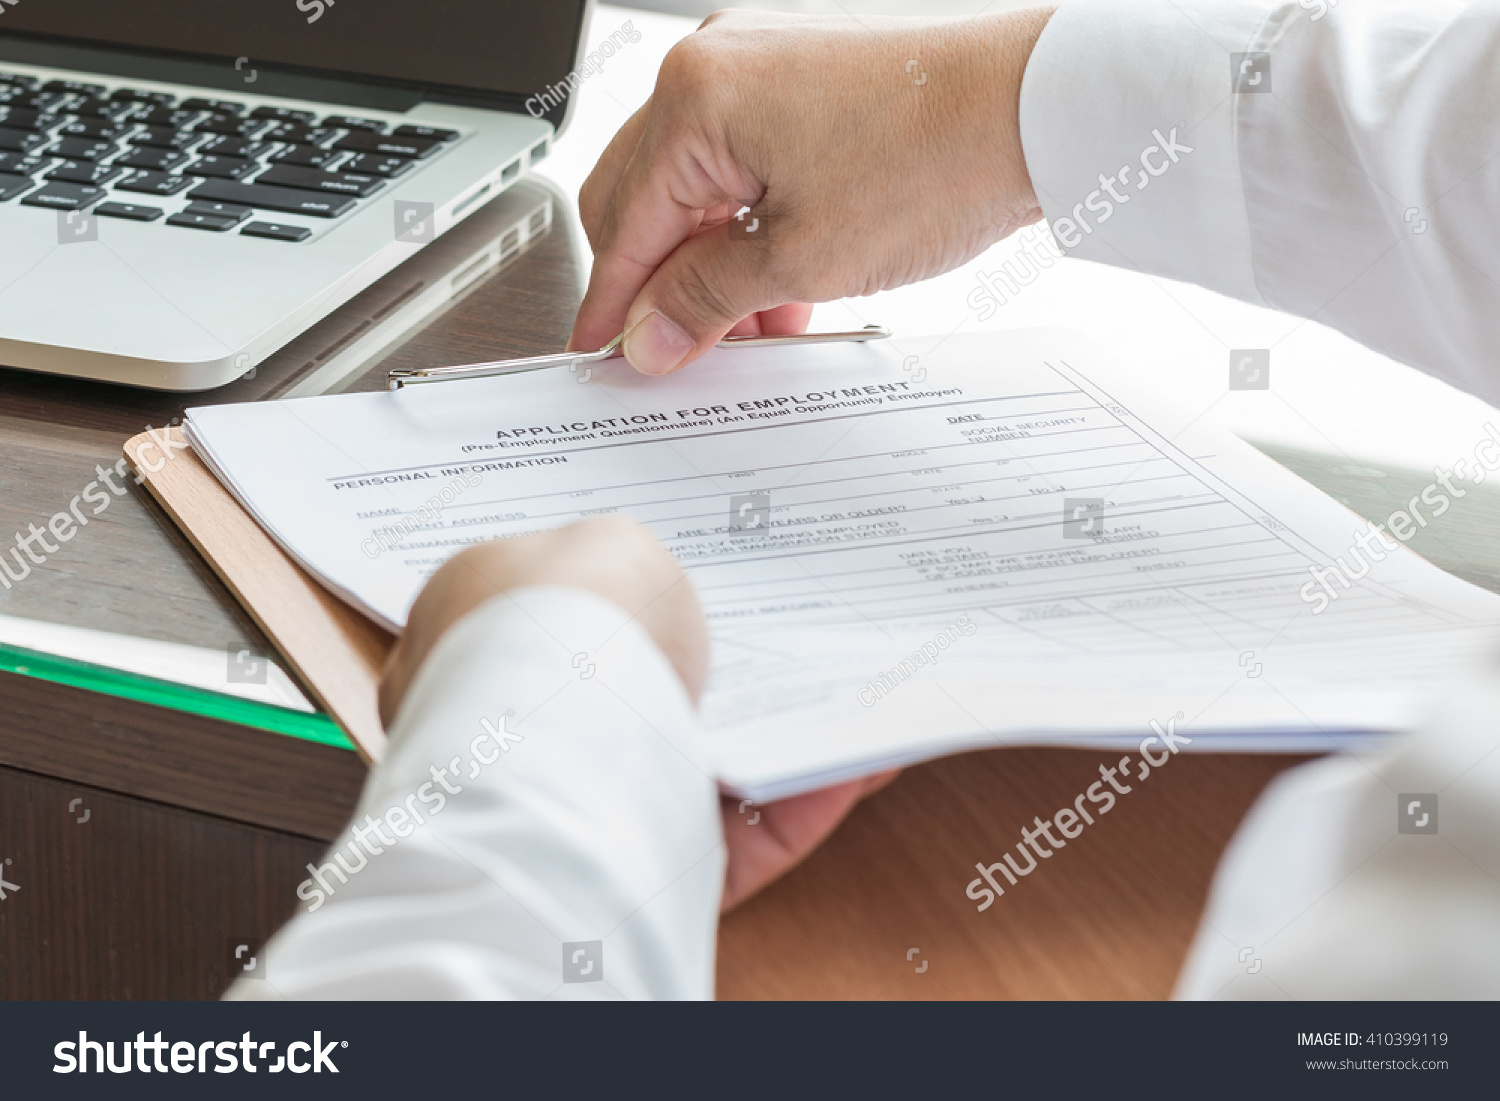 Applicant Filing Company Application Form Document Stock Photo ...